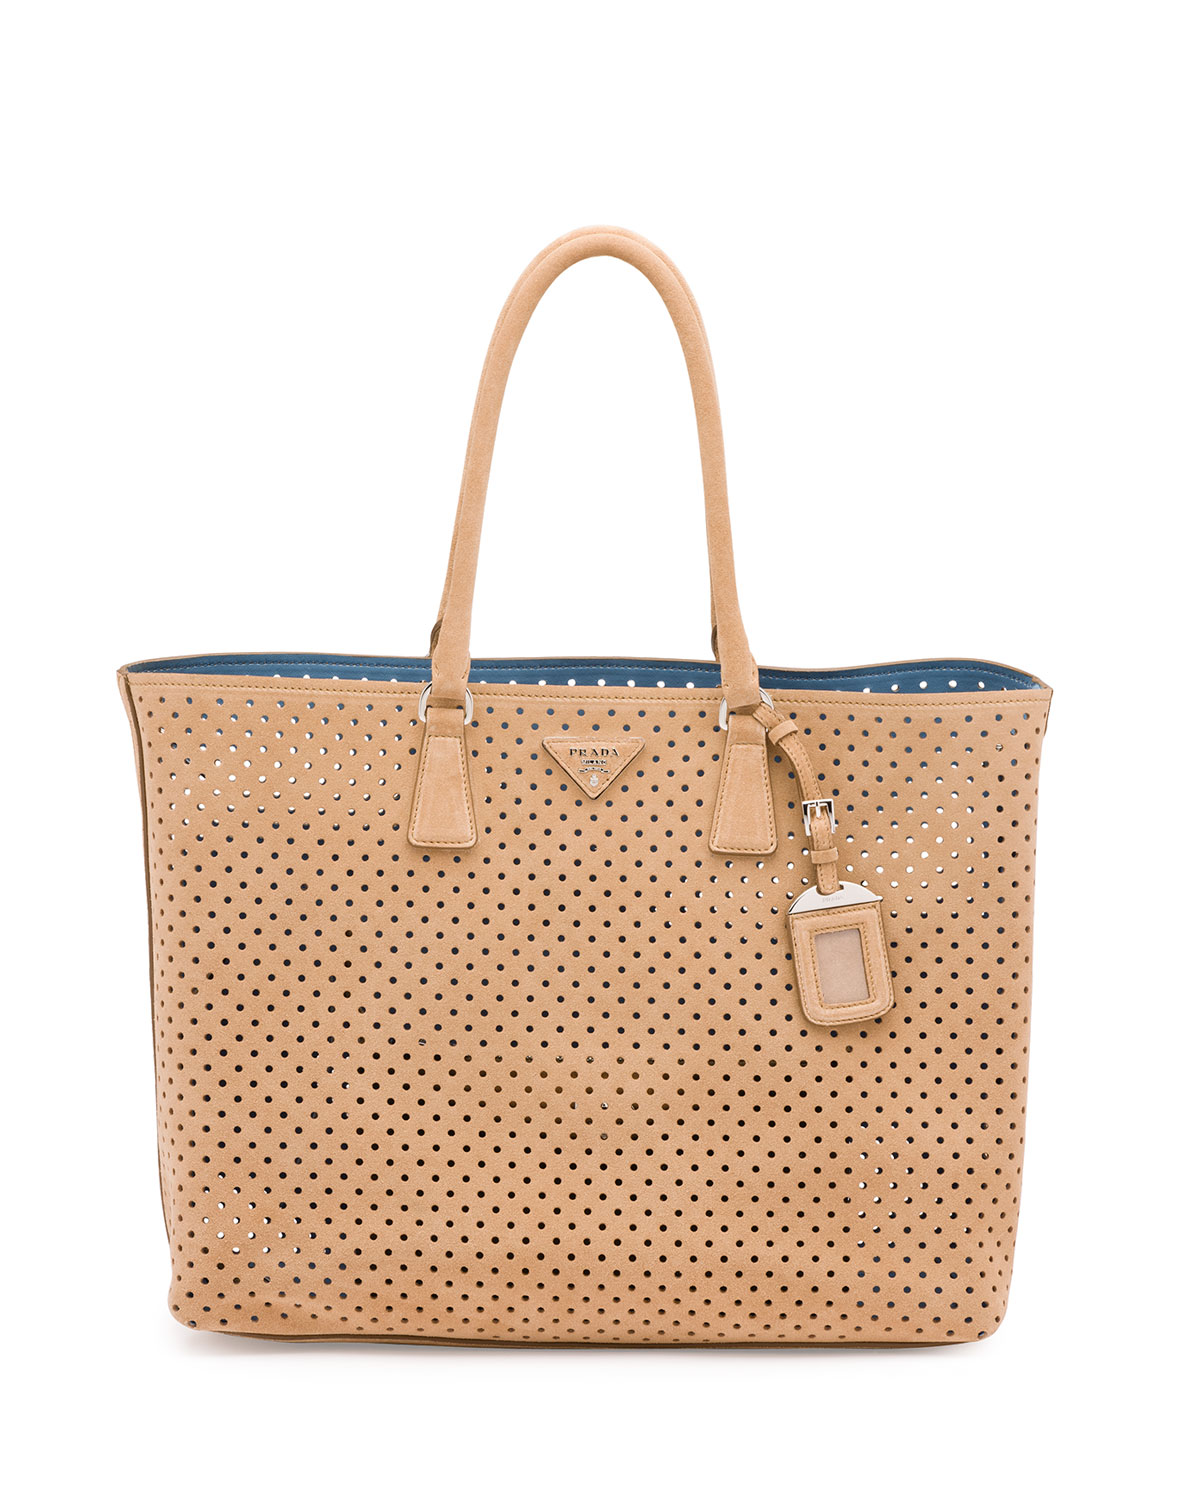 d27f4e8e2284 Prada Suede Perforated Tote Bag, Tan (Cammello) | Neiman Marcus